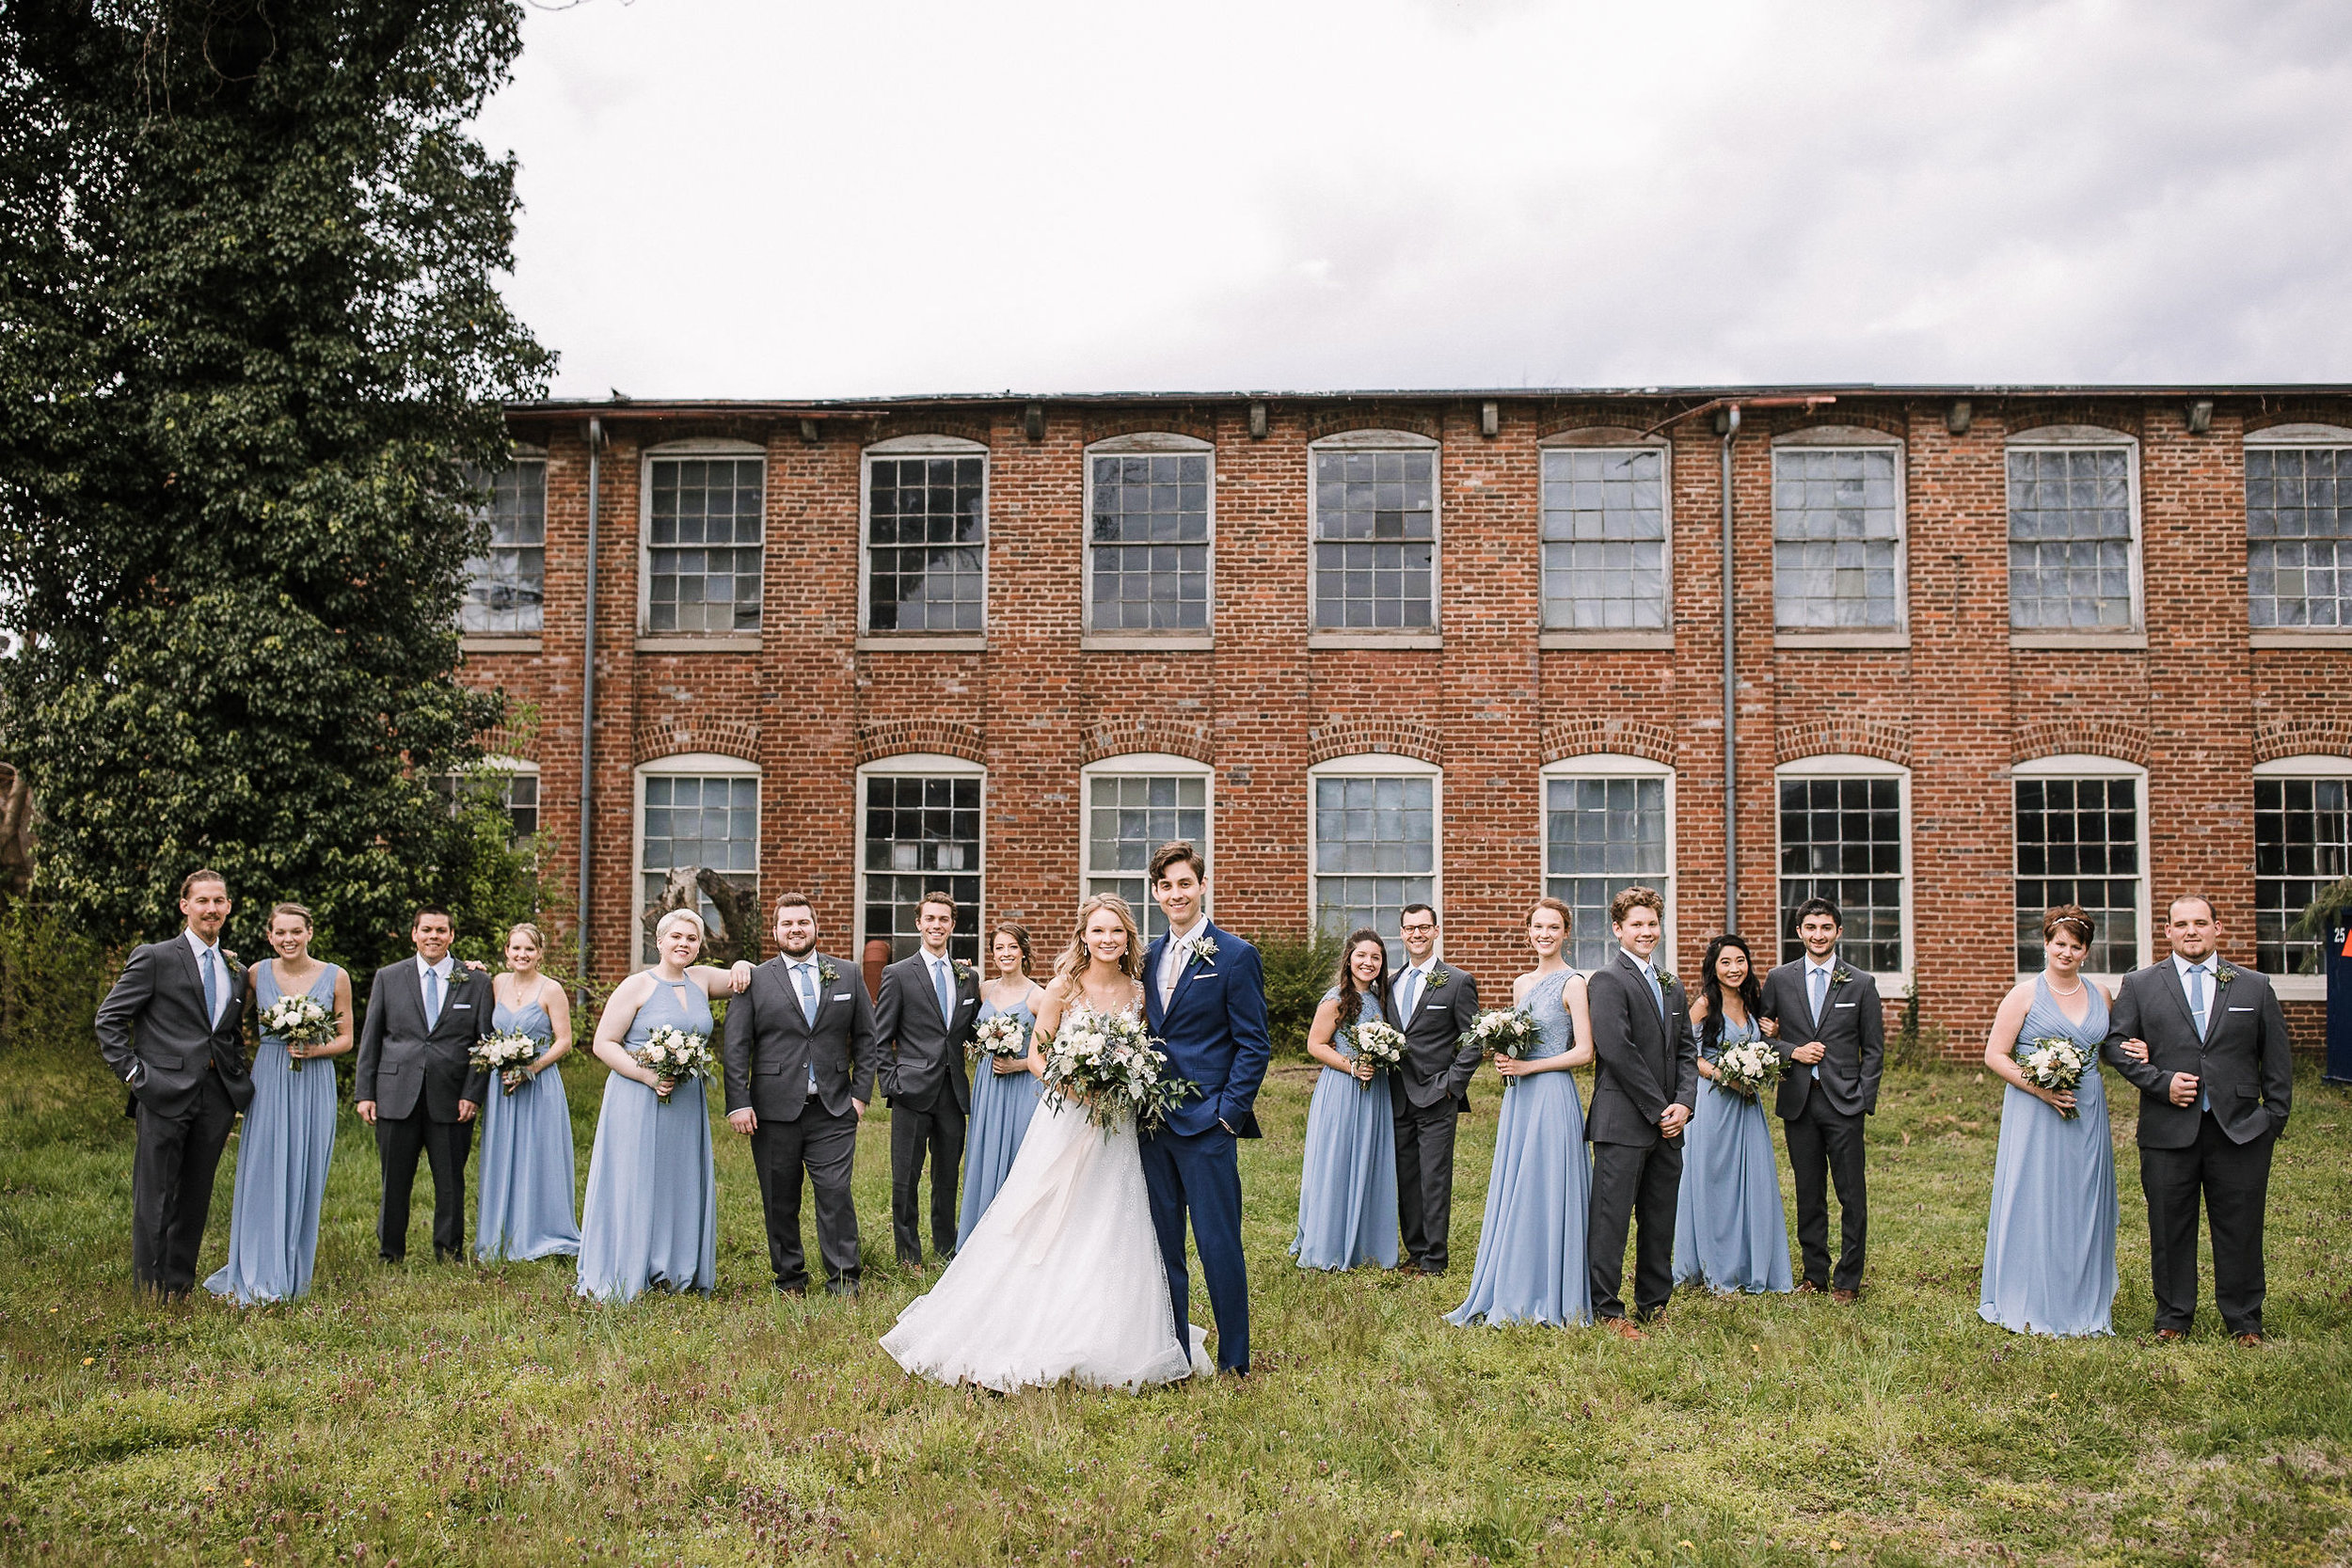 wedding party posing with bride and groom at the Inn at the Old Silk Mill